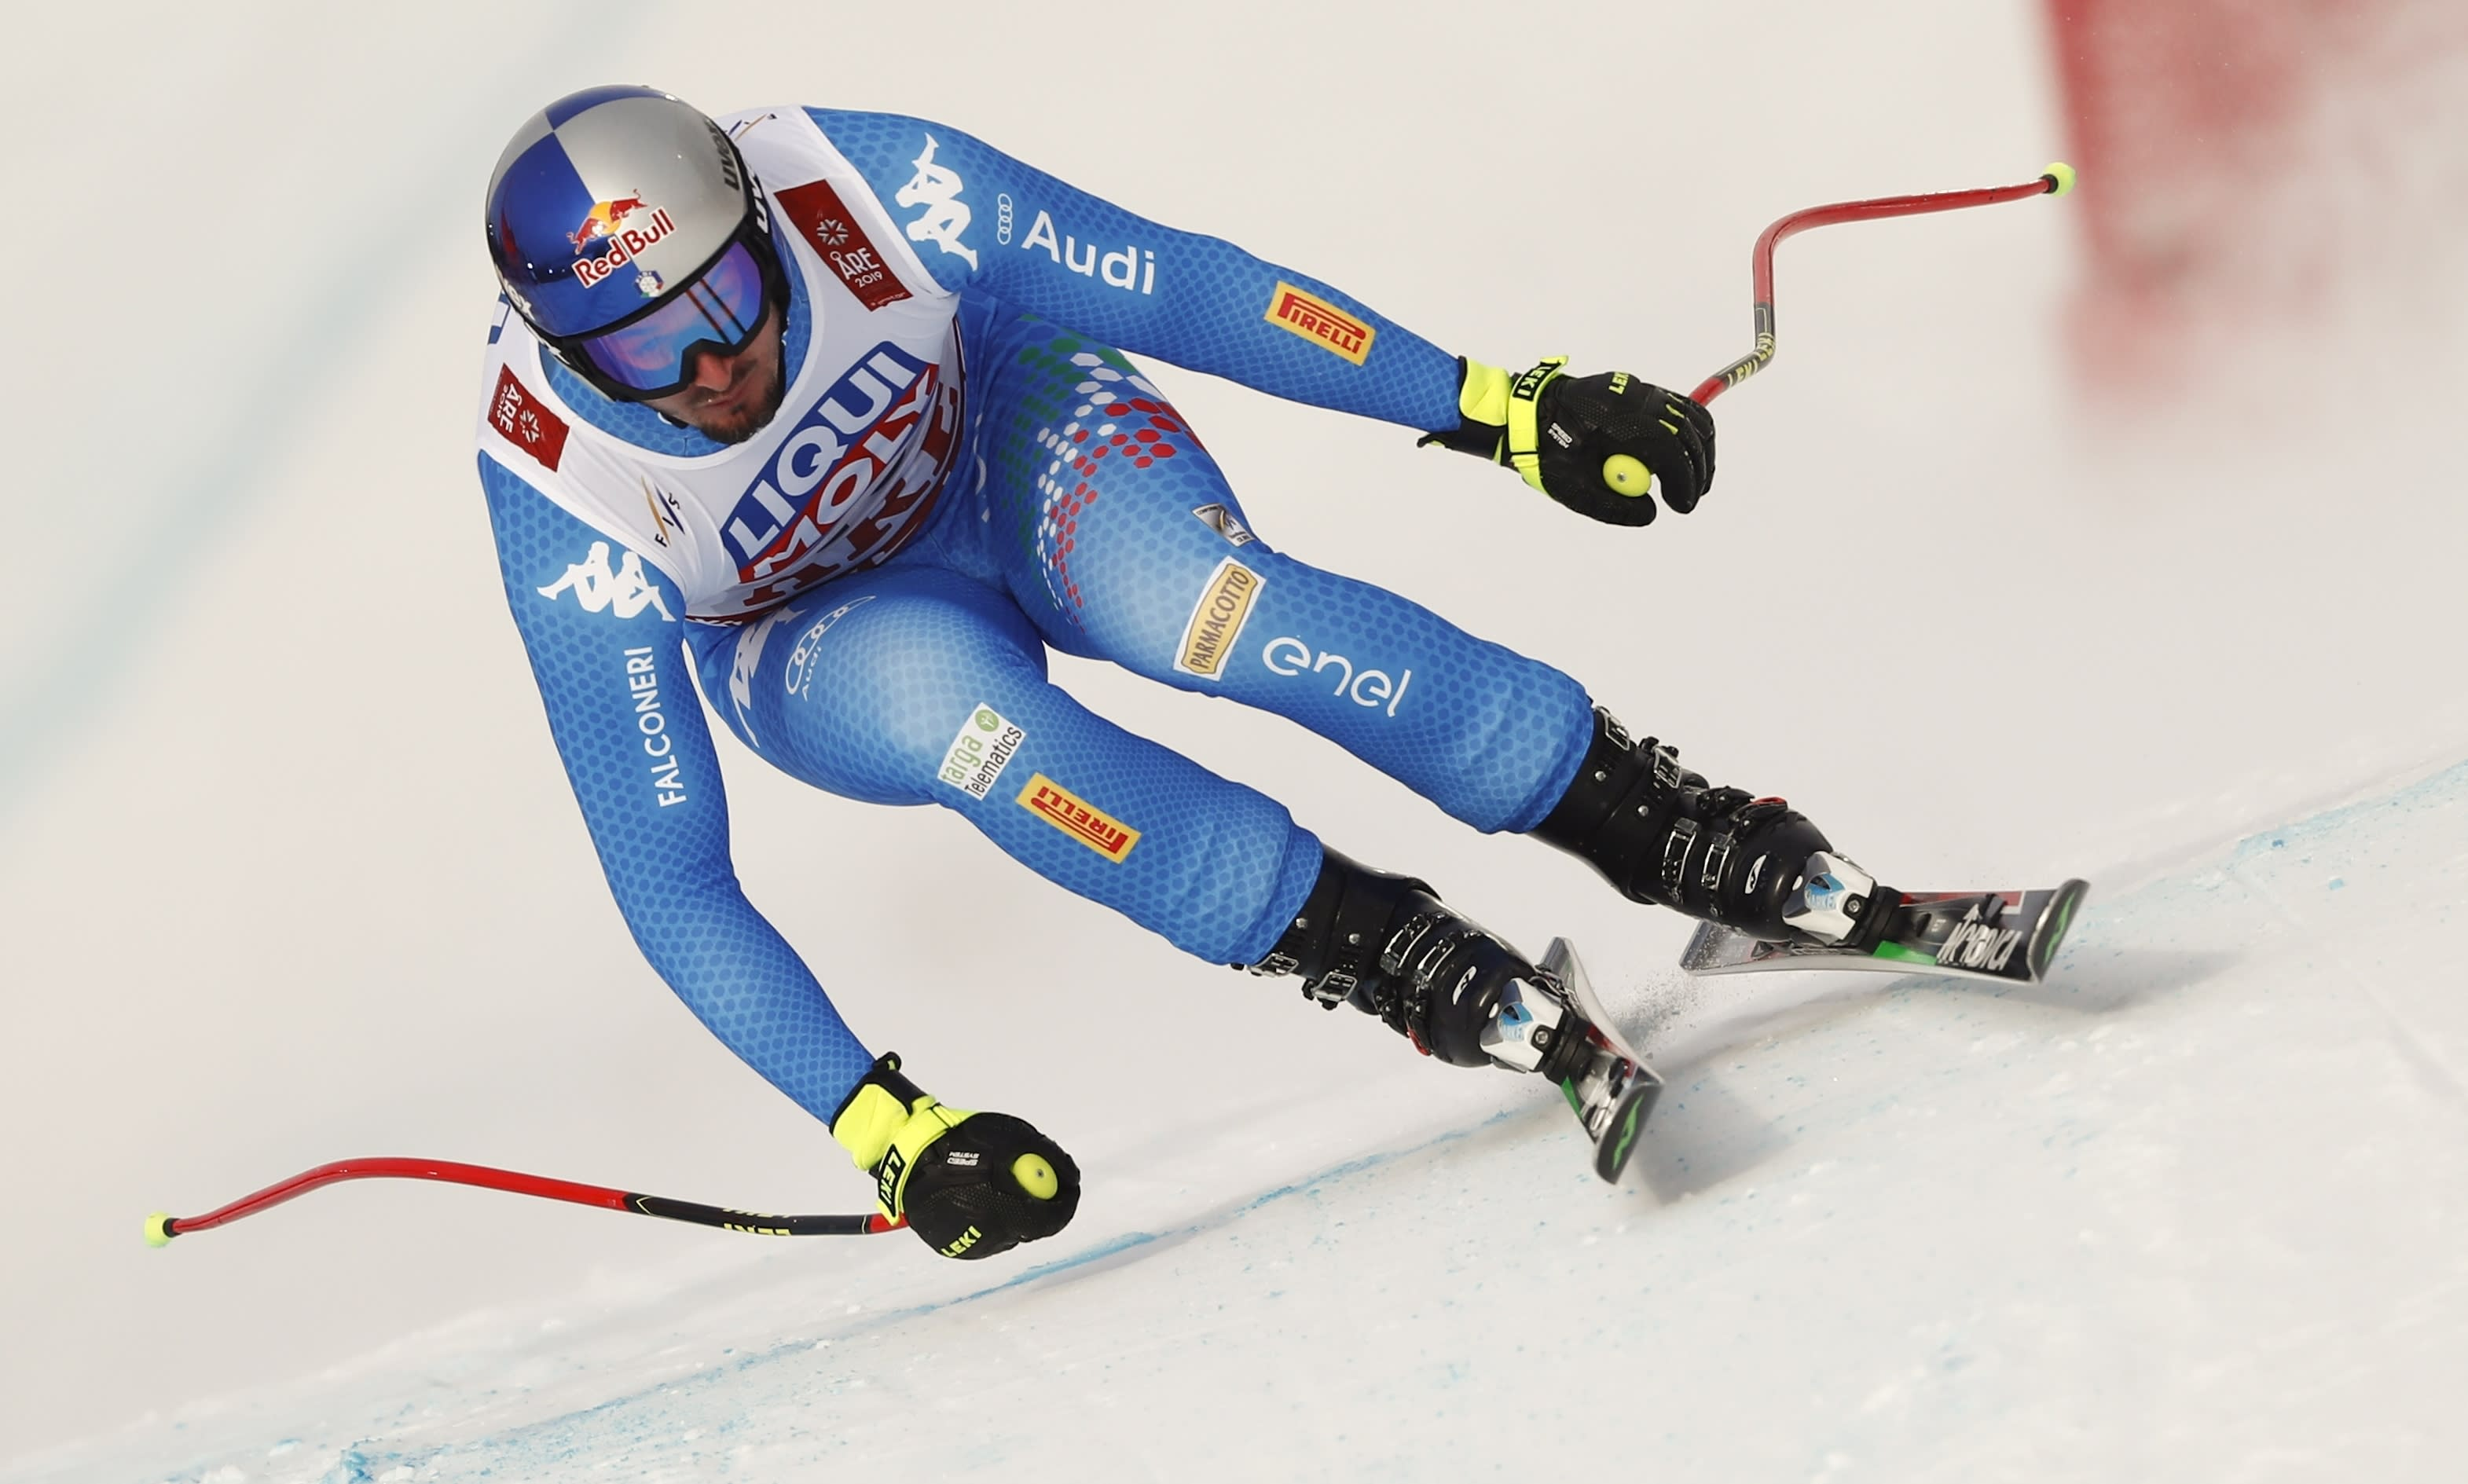 Italy's Dominik Paris speeds down the course during training for the men's downhill, at the alpine ski World Championships in Are, Sweden, Friday, Feb. 8, 2019. (AP Photo/Gabriele Facciotti)